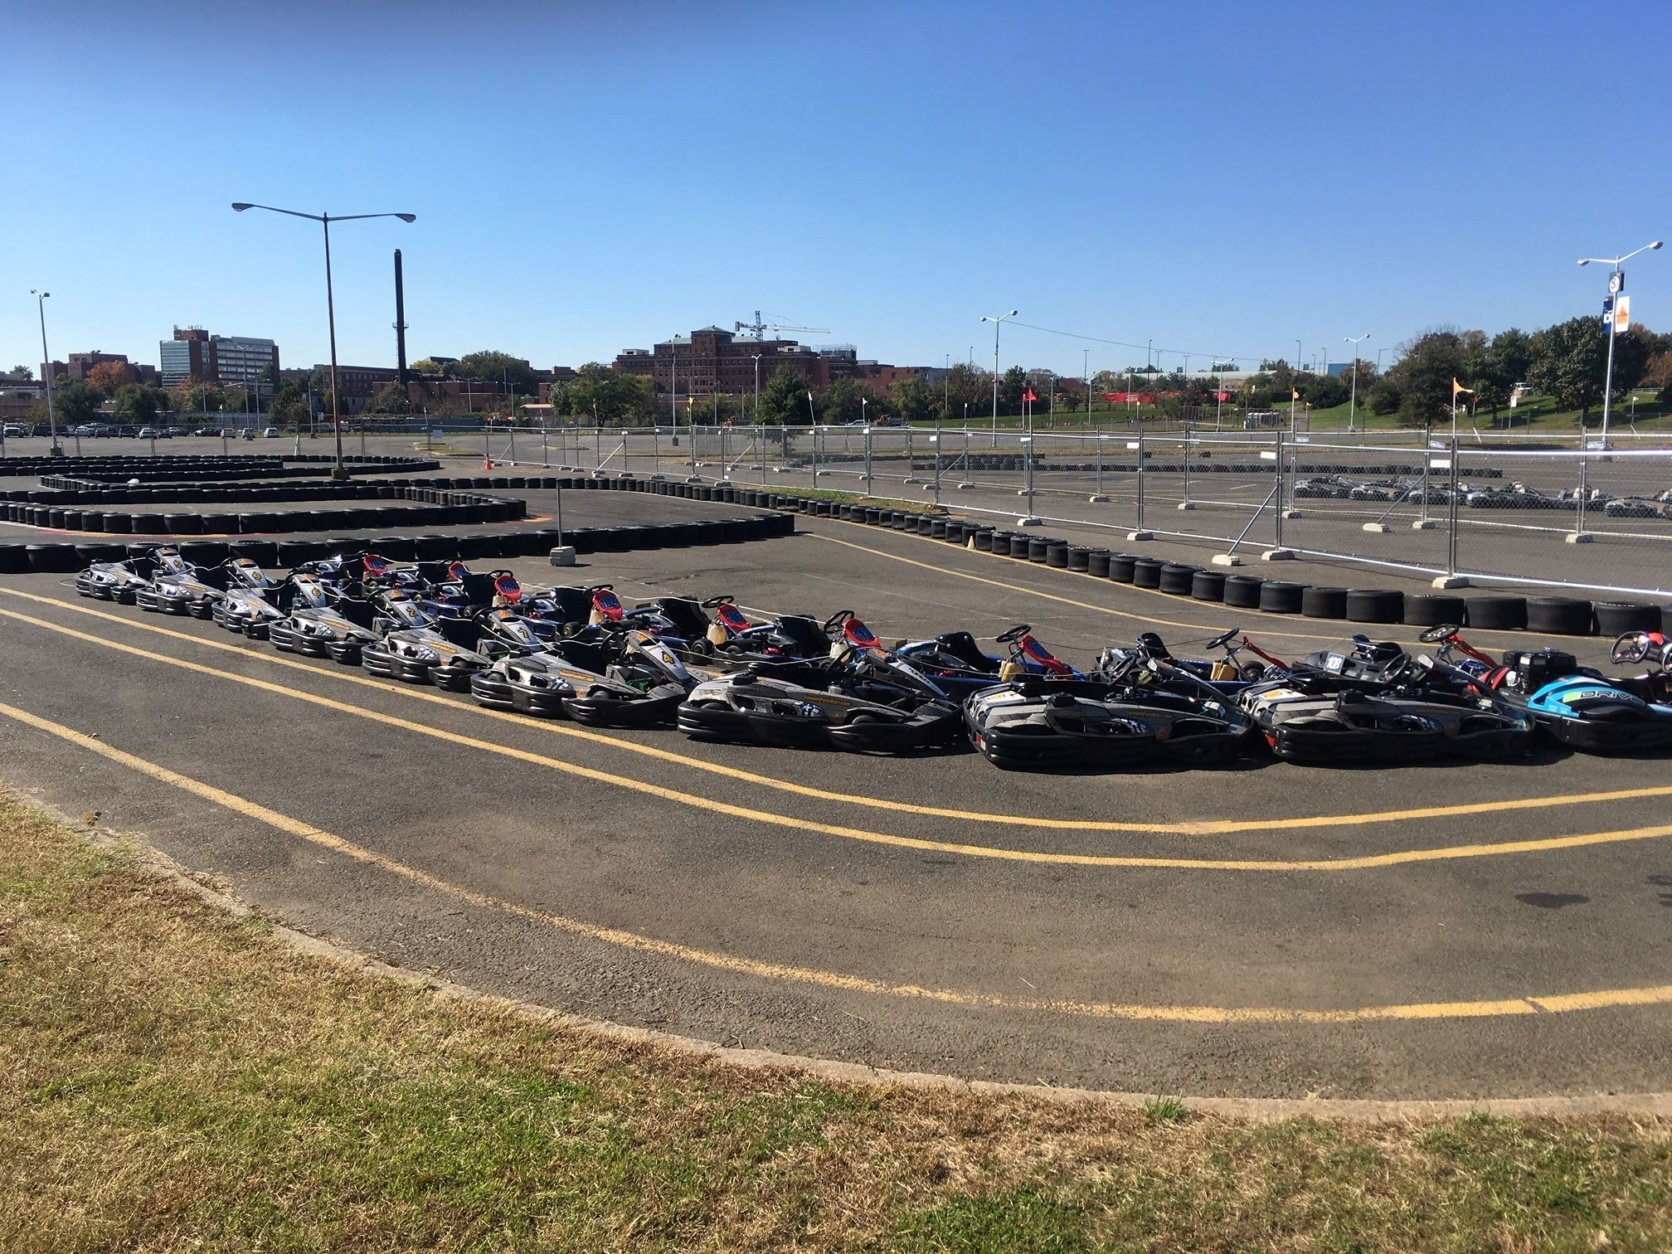 The beginner track at Summit Point Karts, from which drivers must achieve a certain time to advance to the higher speed tracks. (WTOP/Noah Frank)